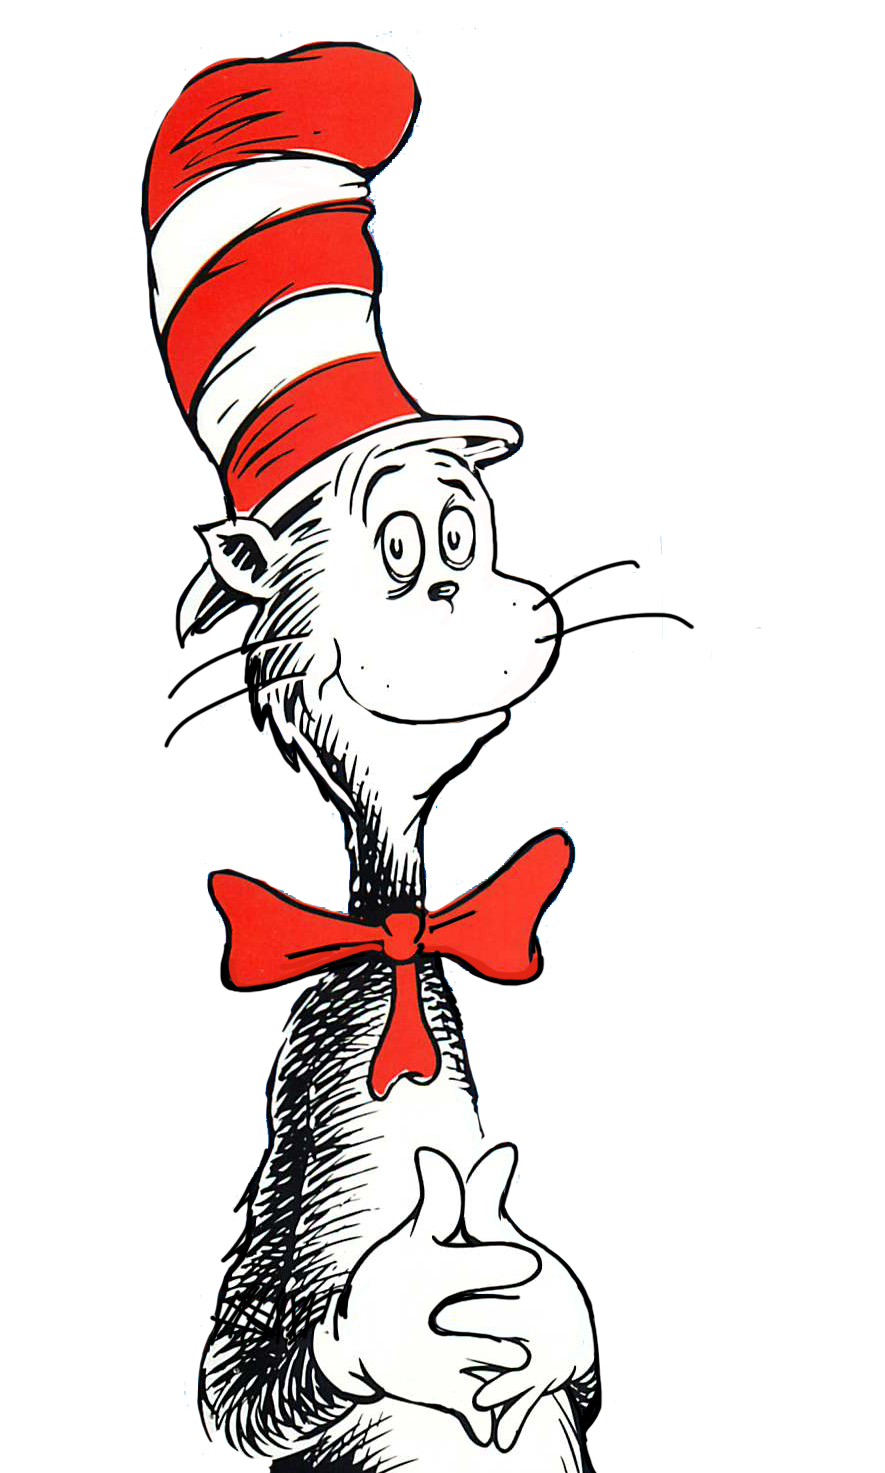 pin by broadway sacramento on few of my favorite things in 2018 rh pinterest com cat in the hat clip art free images cat in the hat clipart black and white